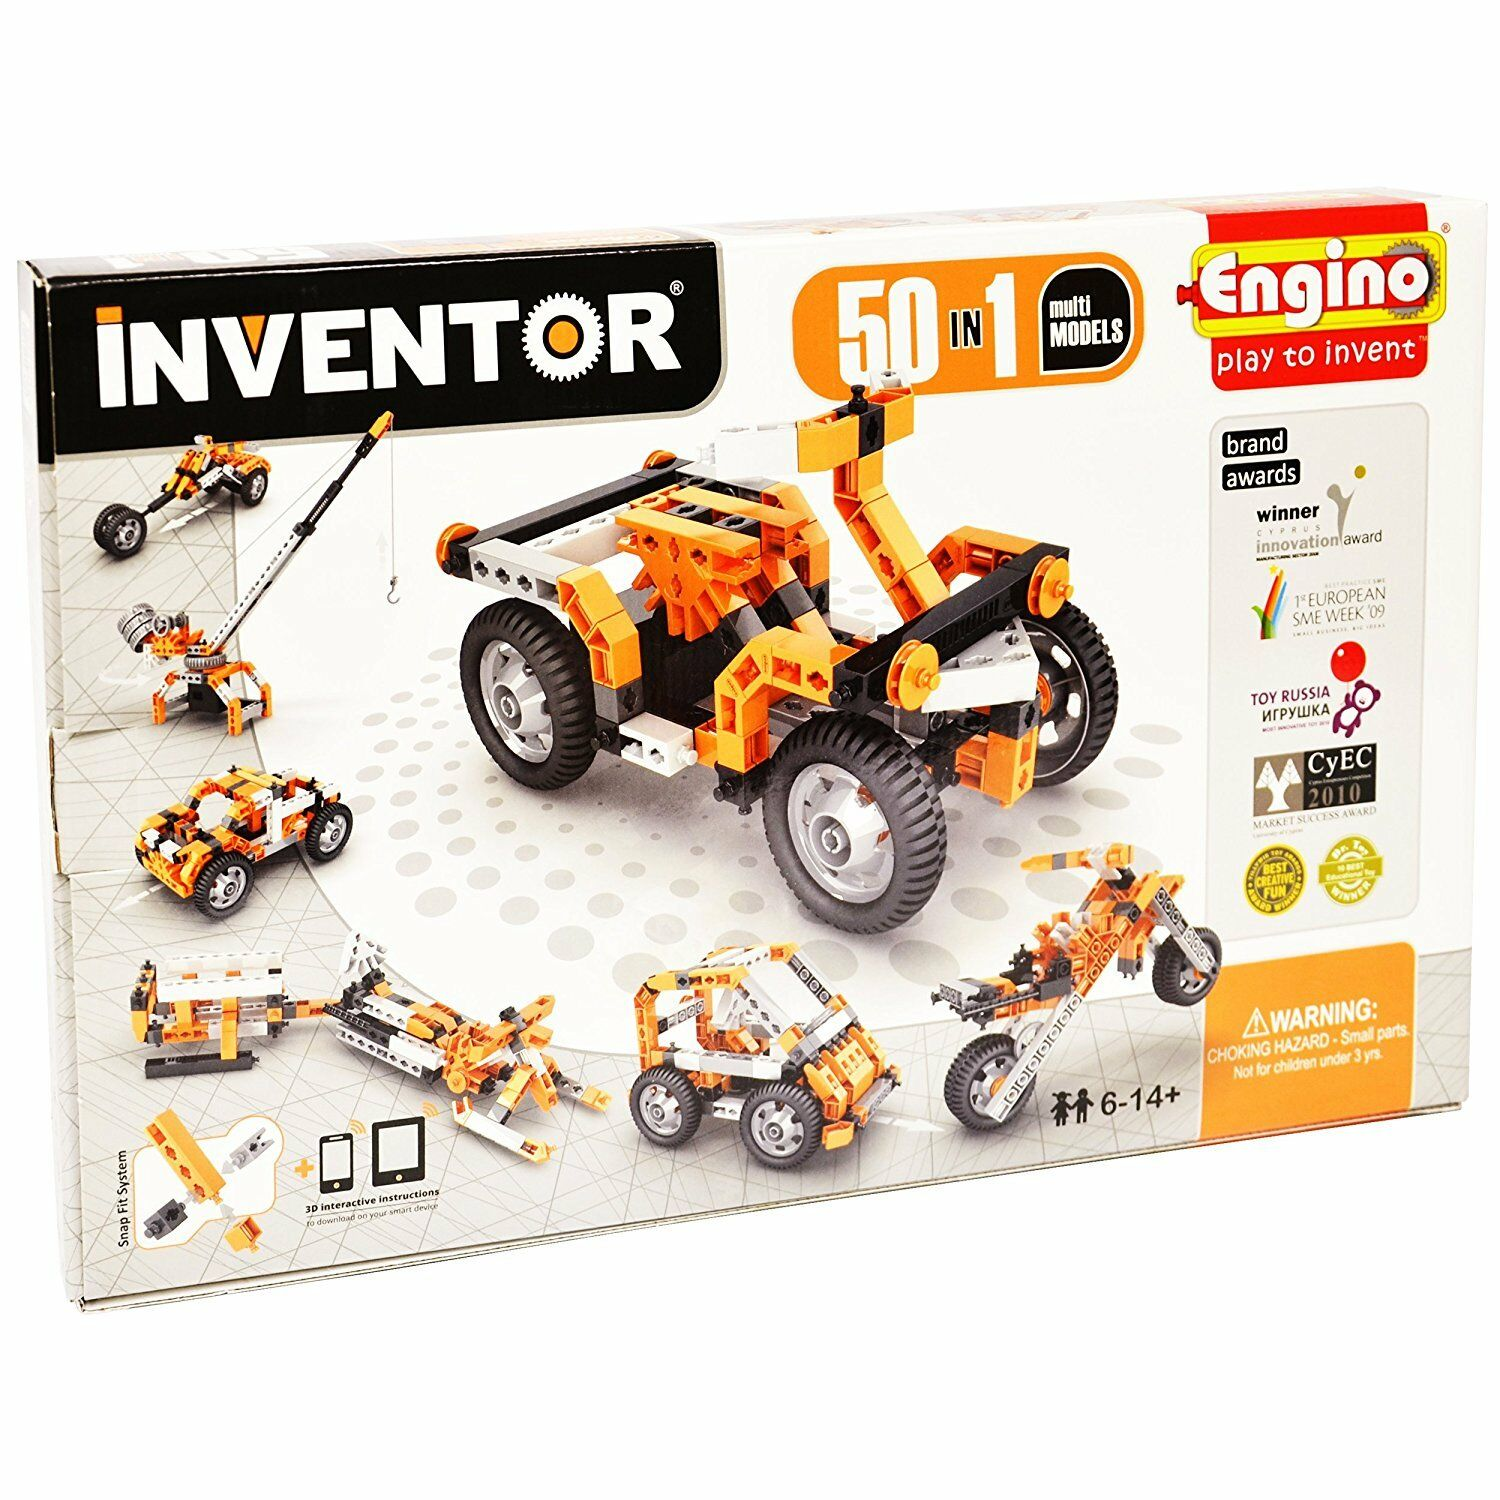 Engino 5030 Inventor - Build 50 Motorized Models Construction KitSPECIAL